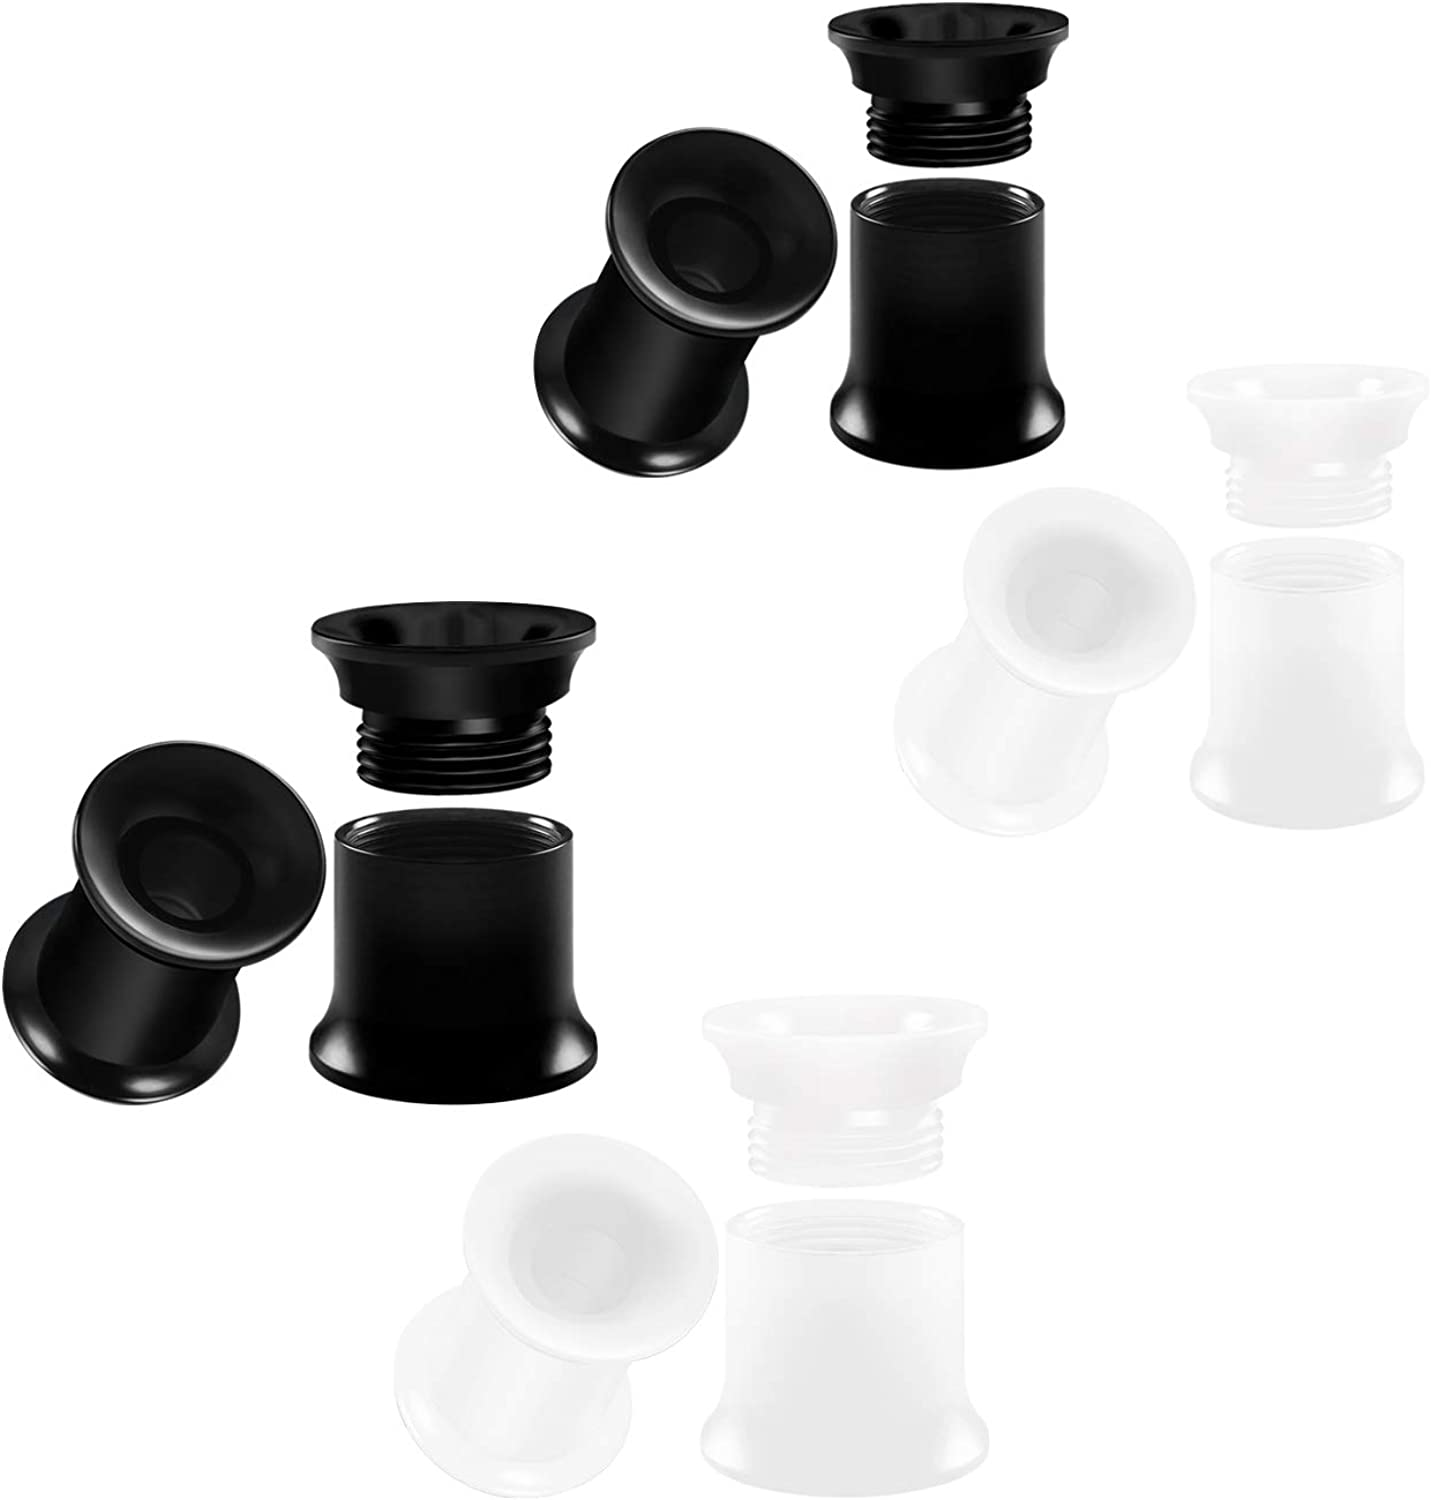 BIG GAUGES 4 Pairs Black White Acrylic Double Flared Piercing Jewelry Ear Stretching Lobe Internal Screw-fit Flesh Tunnel Earring Plugs